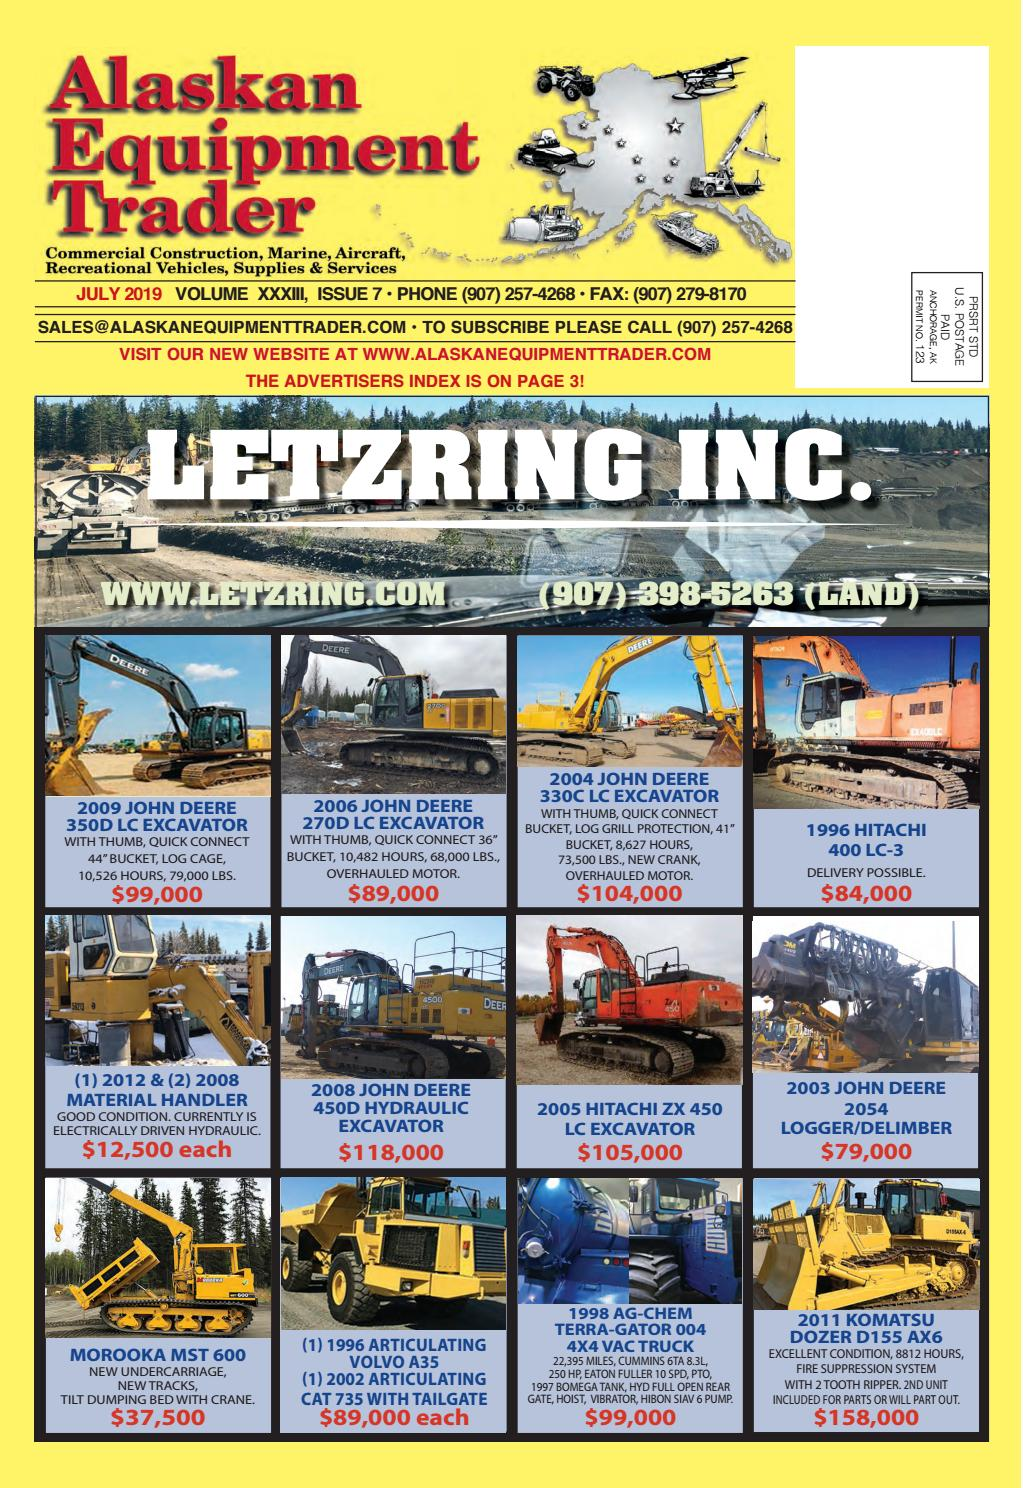 Alaskan Equipment Trader - July 2019 by Anchorage Daily News